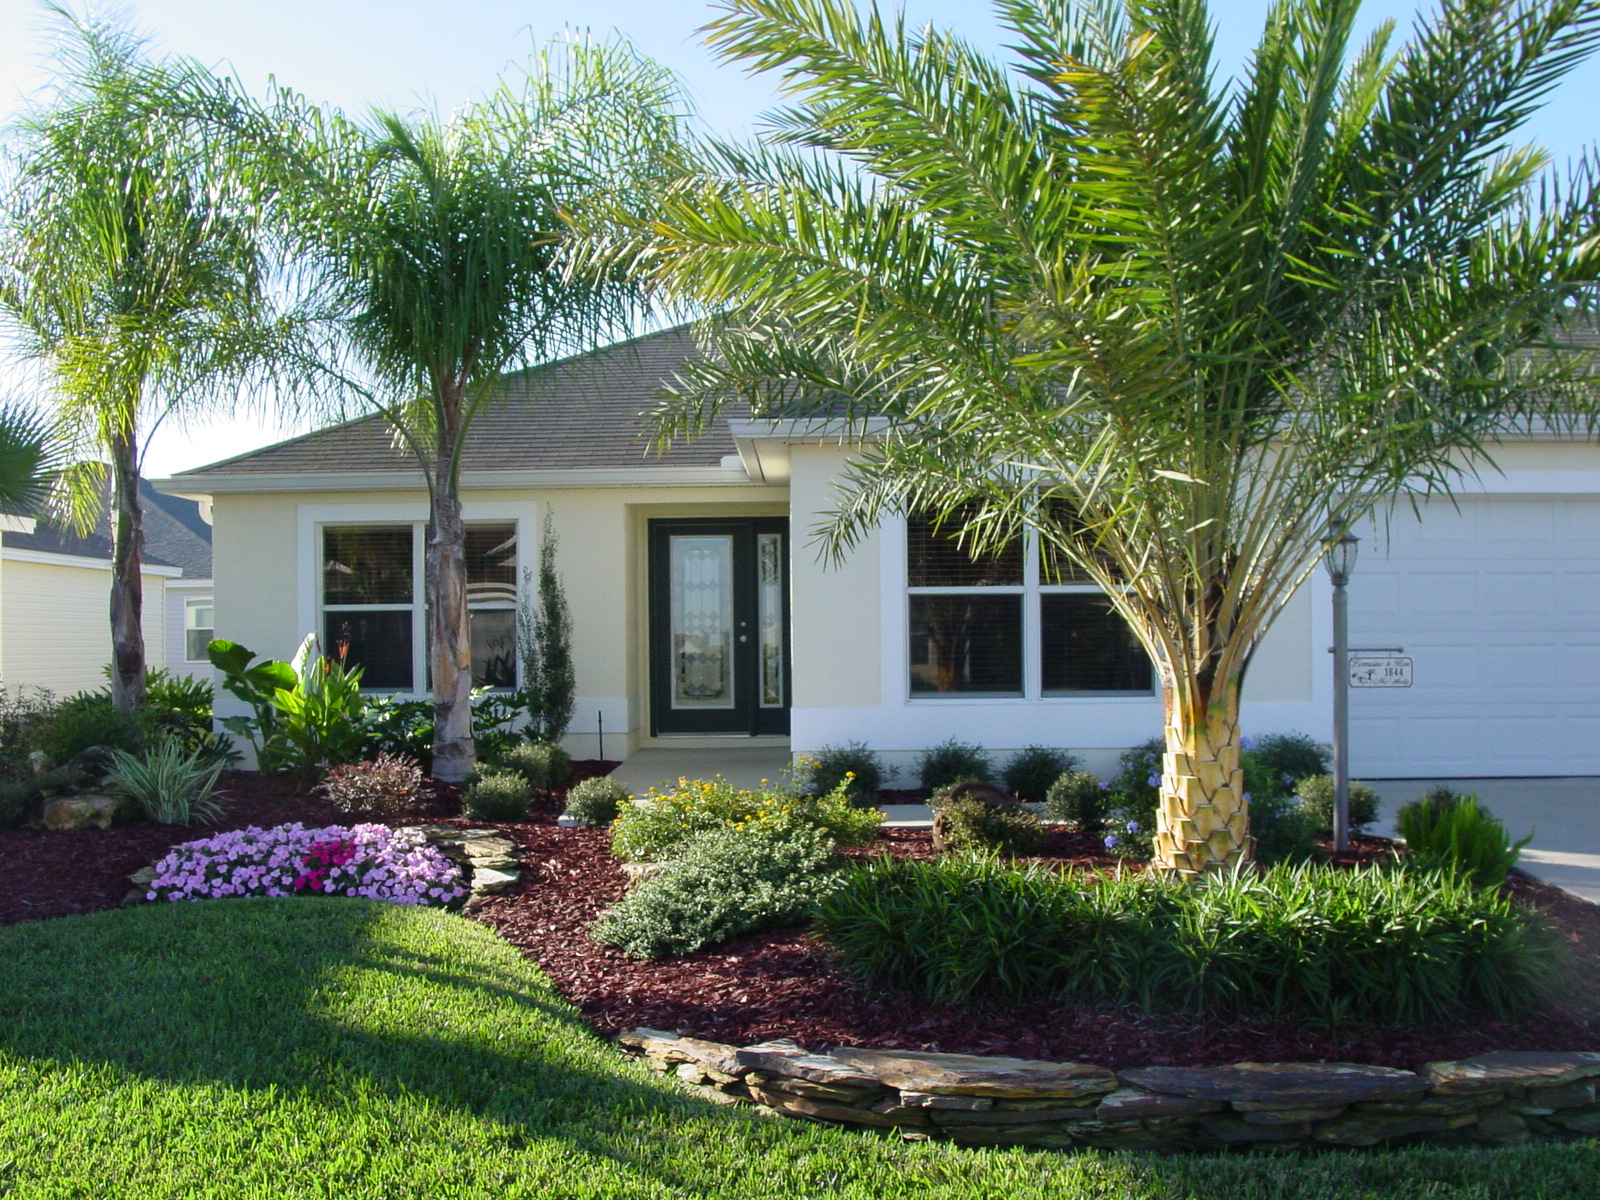 Florida Home Landscaping Ideas Florida Tropical ... on Tropical Landscaping Ideas For Small Yards id=77799